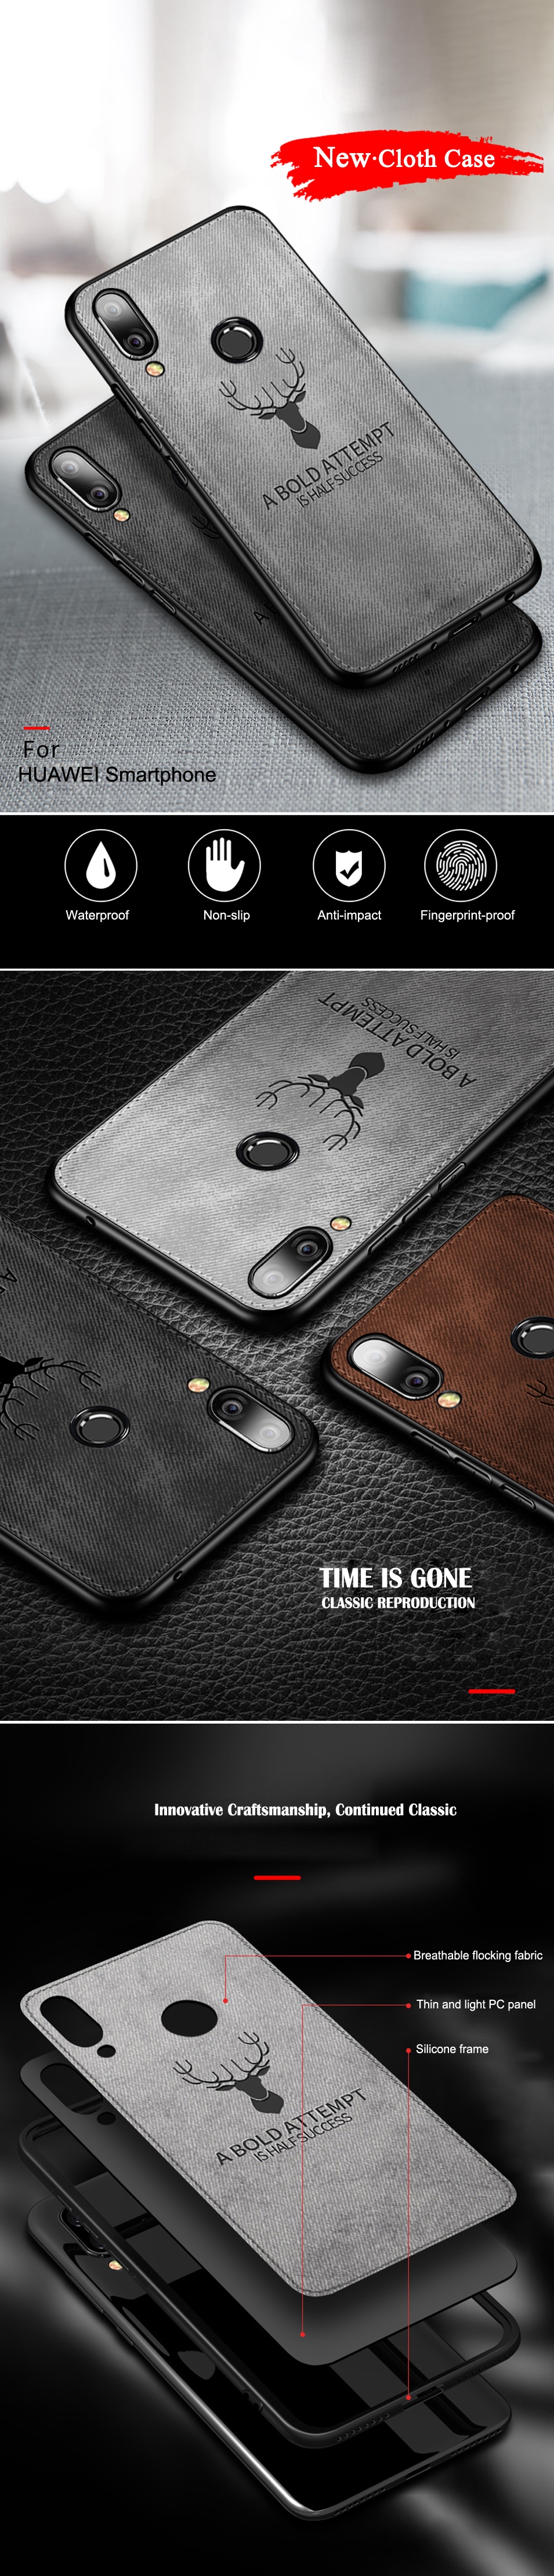 For HUAWEI Honor 8X 8C 8A Case Cover TPU Silicone Bumper Soft DEER Cloth Fabric Cover For Huawei honor 7X 7C 6C 7A Pro cases (7)